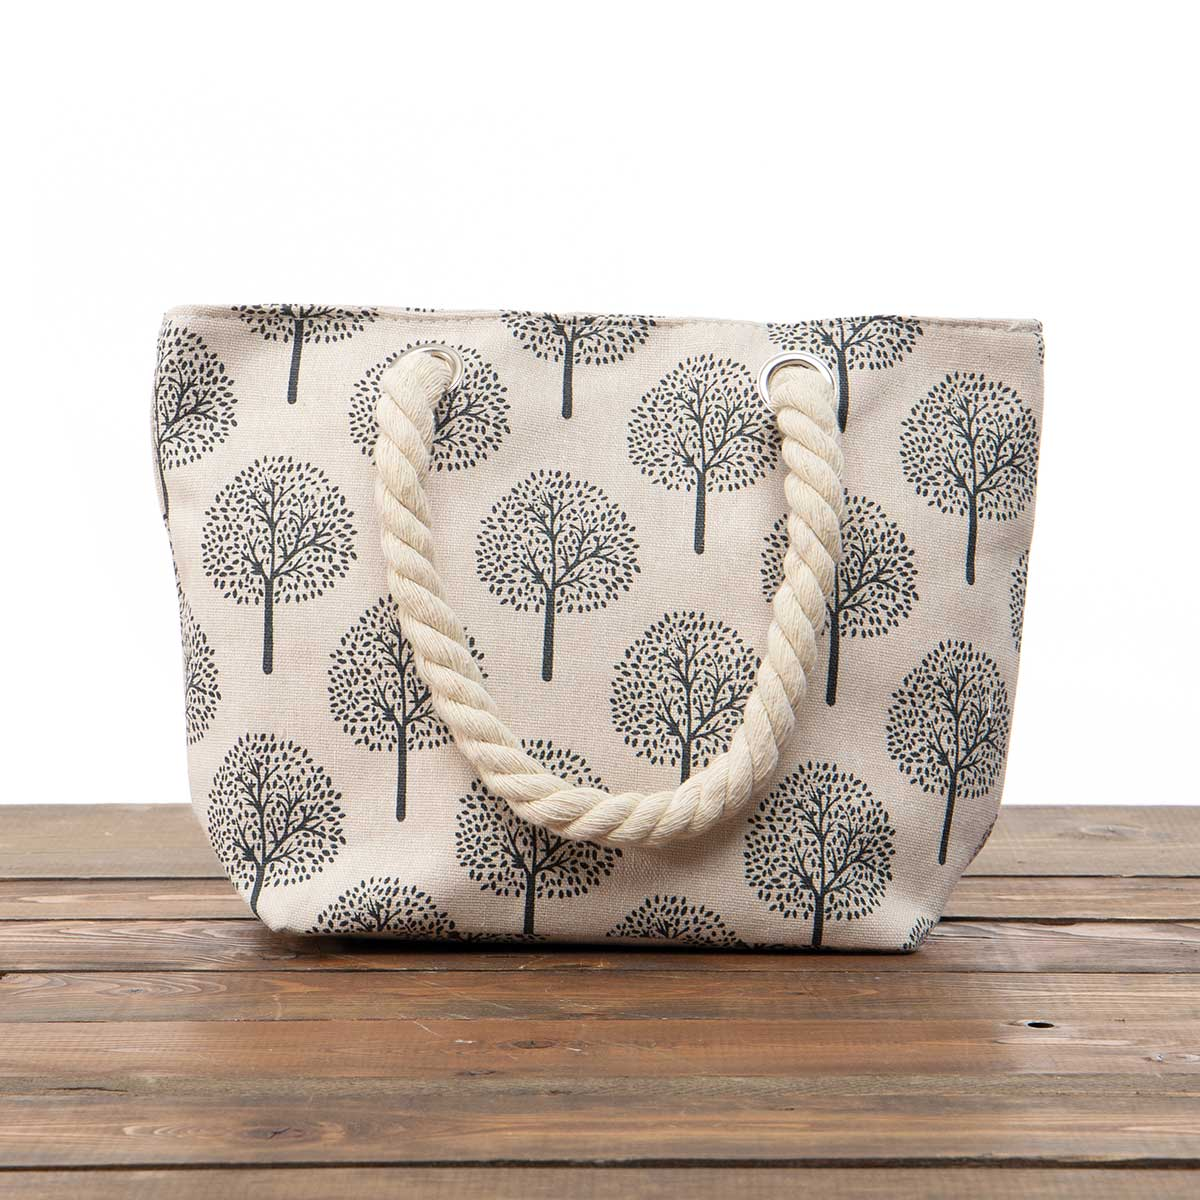 """Beige """"Trees"""" Small Canvas Bag 11.5""""x8""""x3.5"""" with 5.5"""" Rope Shou"""